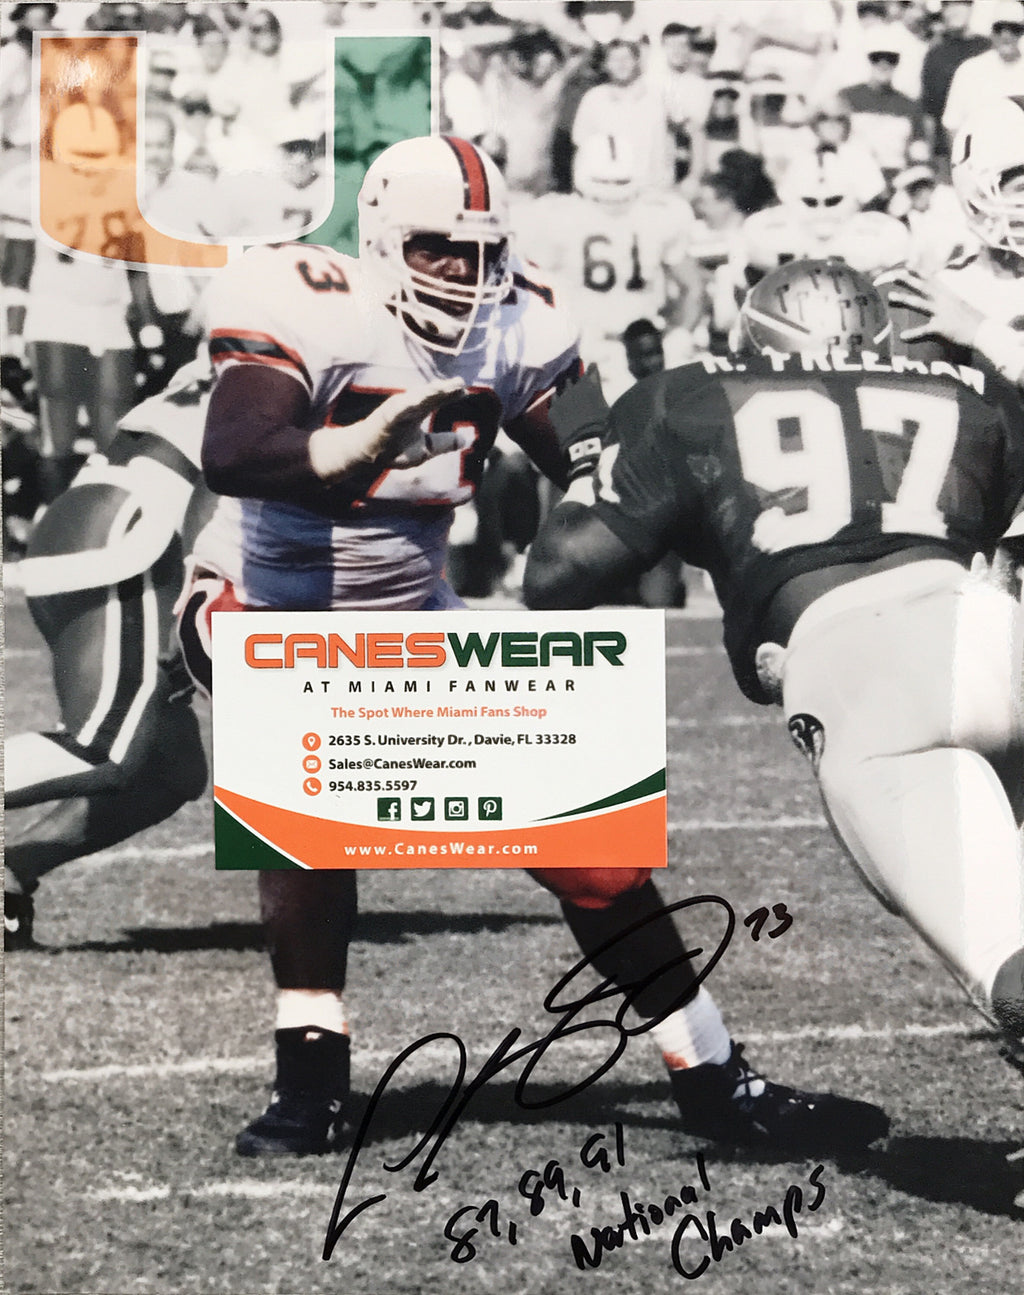 Miami Hurricanes Leon Searcy Autographed Photo - 8x10